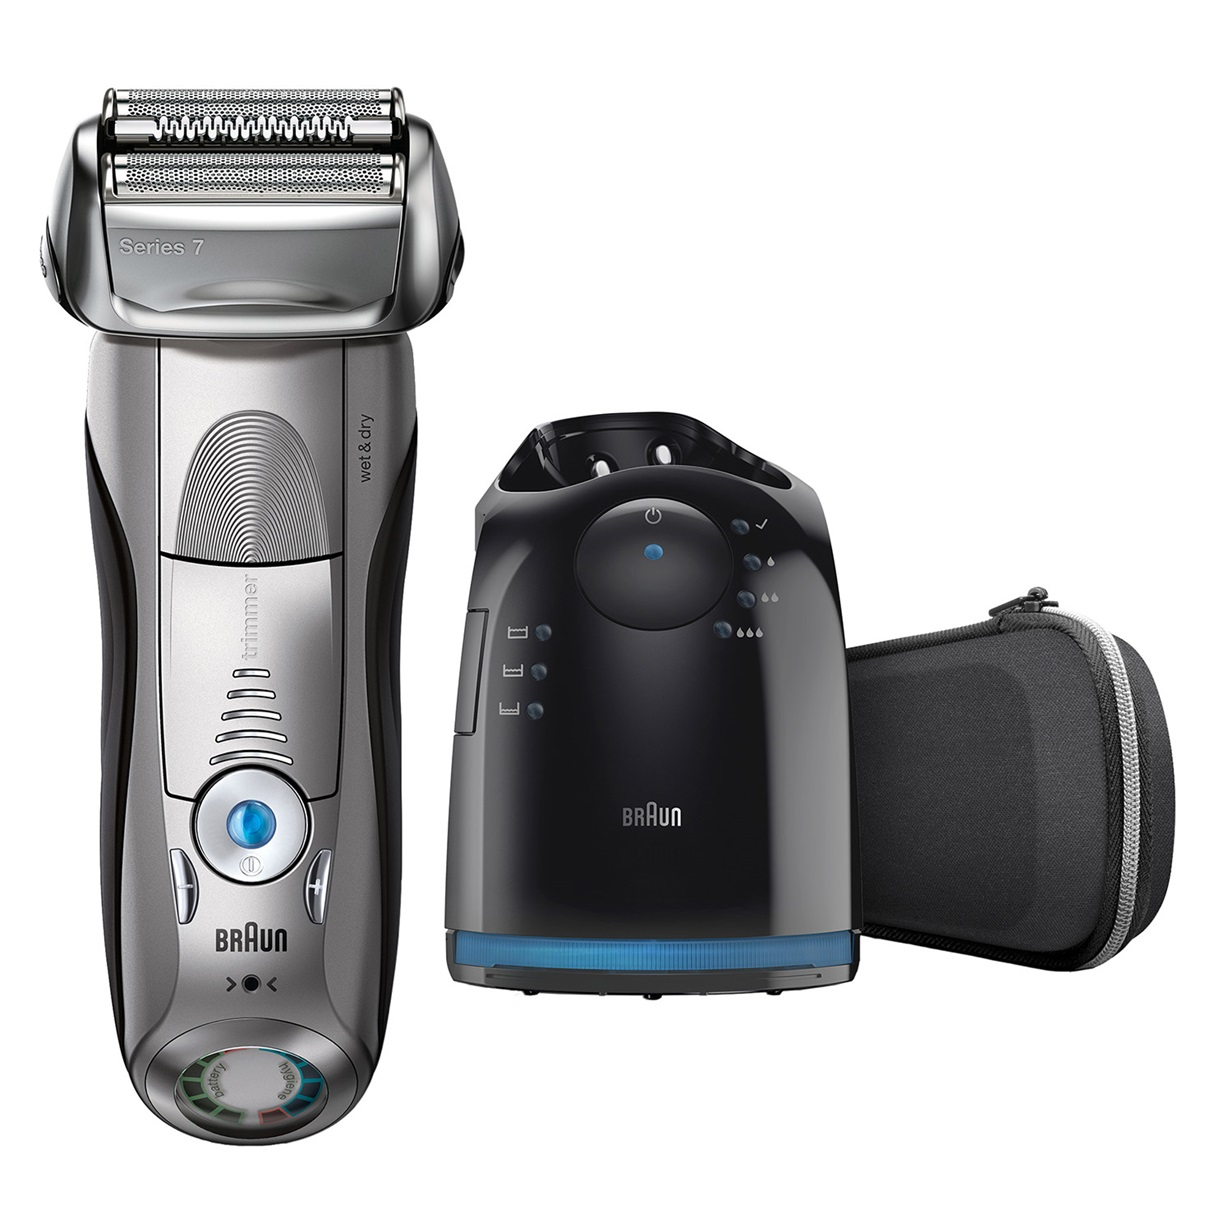 Braun Series 7 7898cc Wet and Dry Men's Electric Foil Shaver - Silver (without Clean & Renew cartridge)